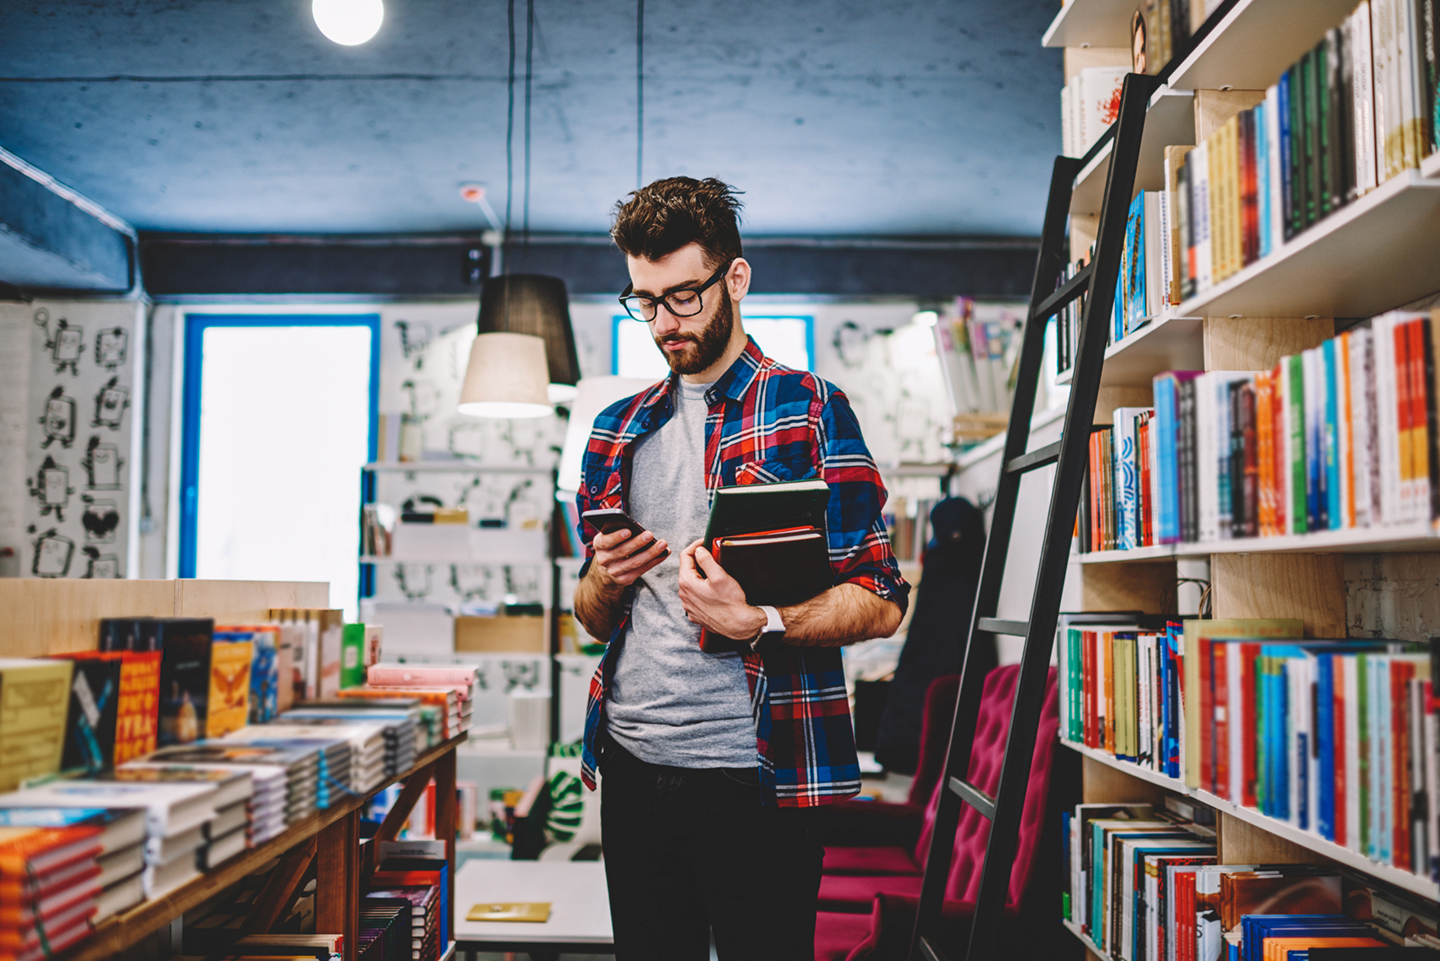 Man on phone holding book in book store